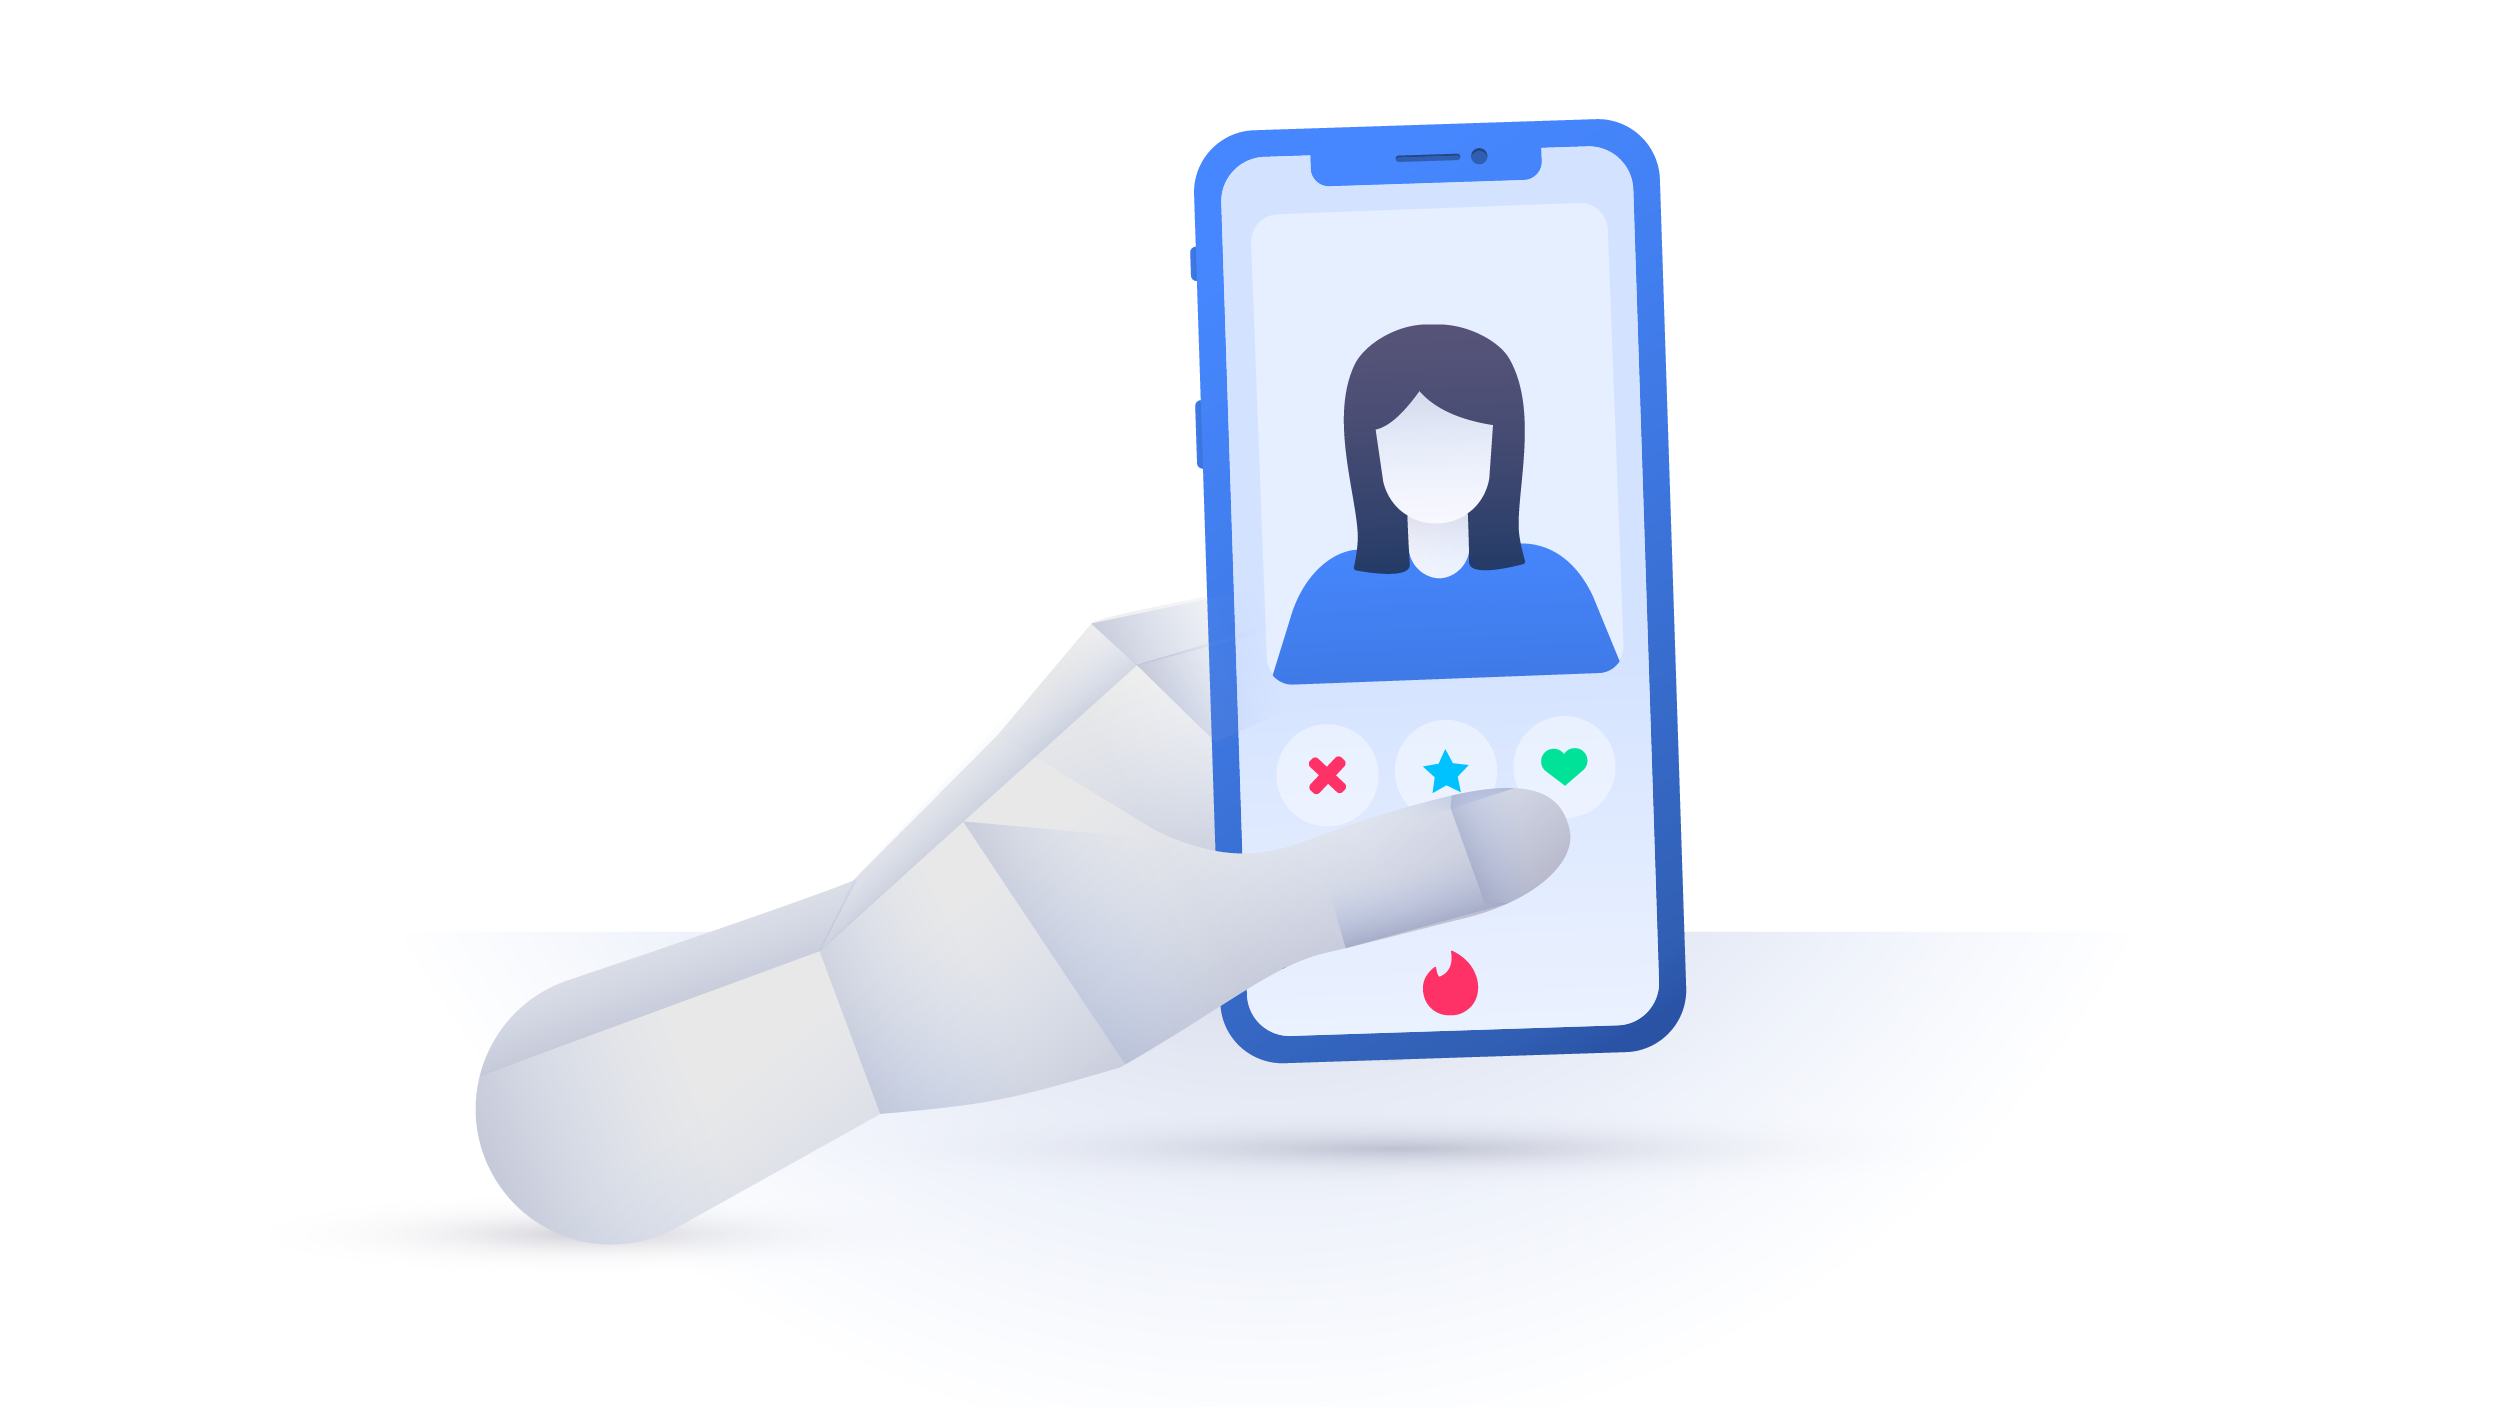 How to identify and report Tinder bots | NordVPN